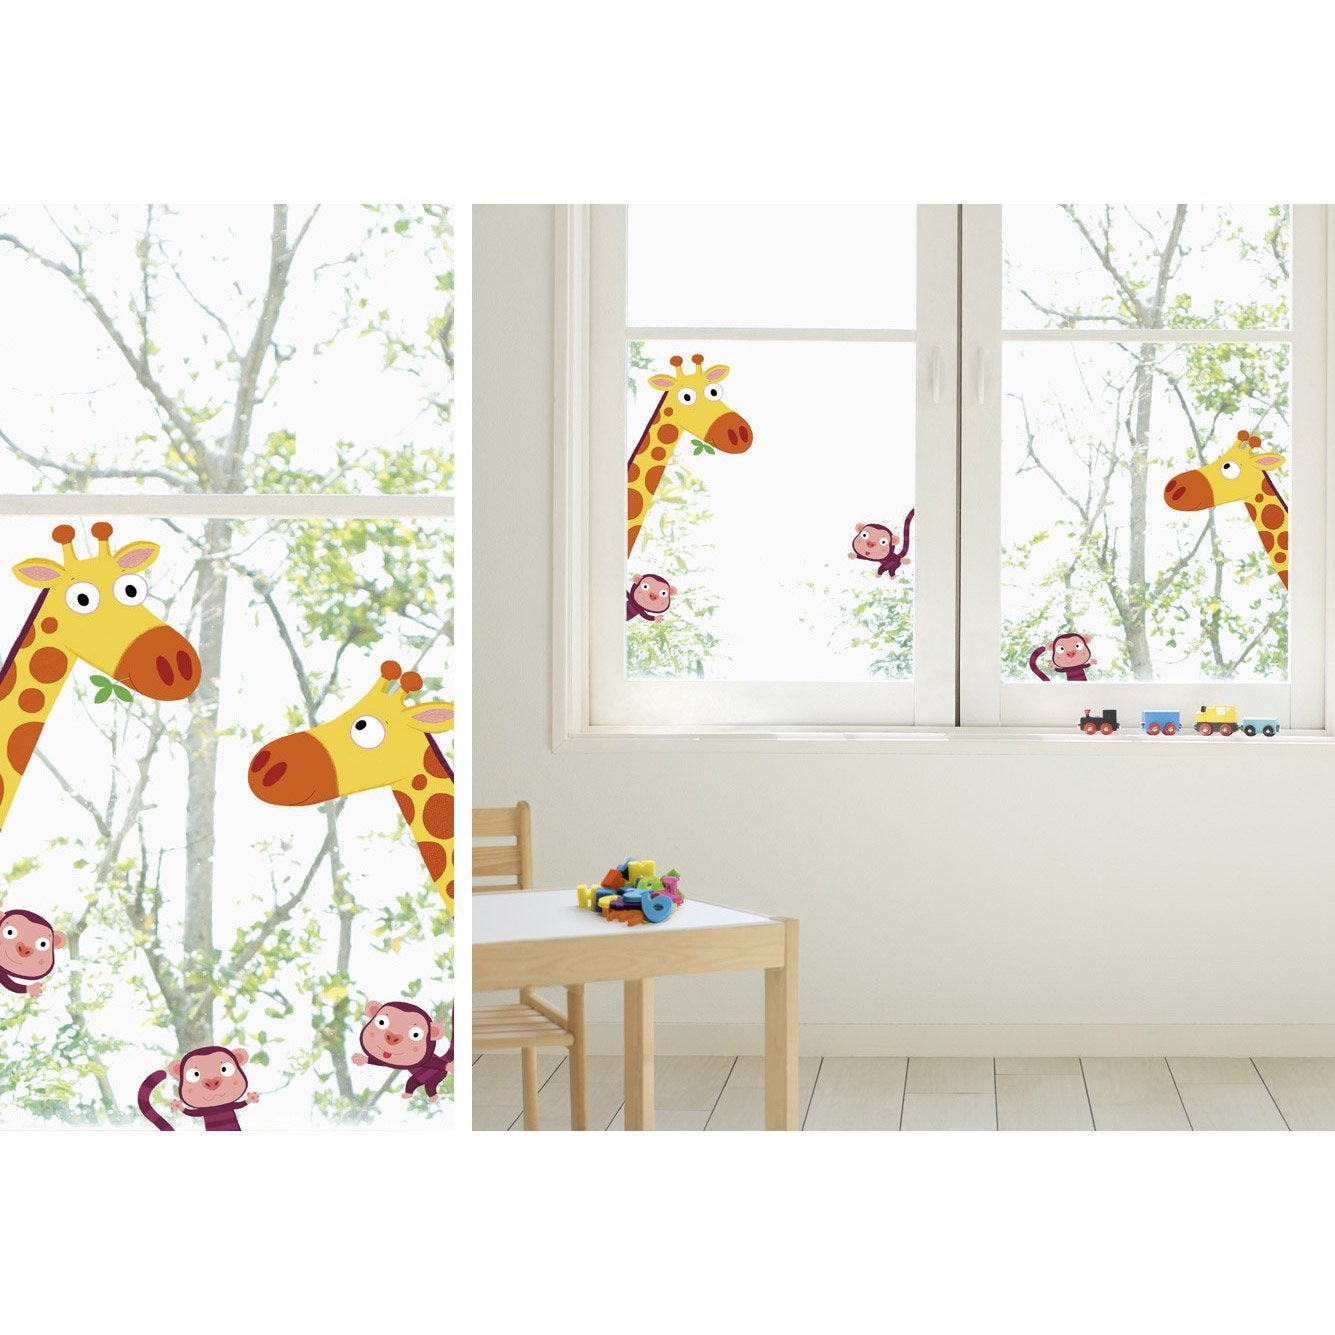 sticker girafes et singes 24 cm x 69 cm leroy merlin. Black Bedroom Furniture Sets. Home Design Ideas